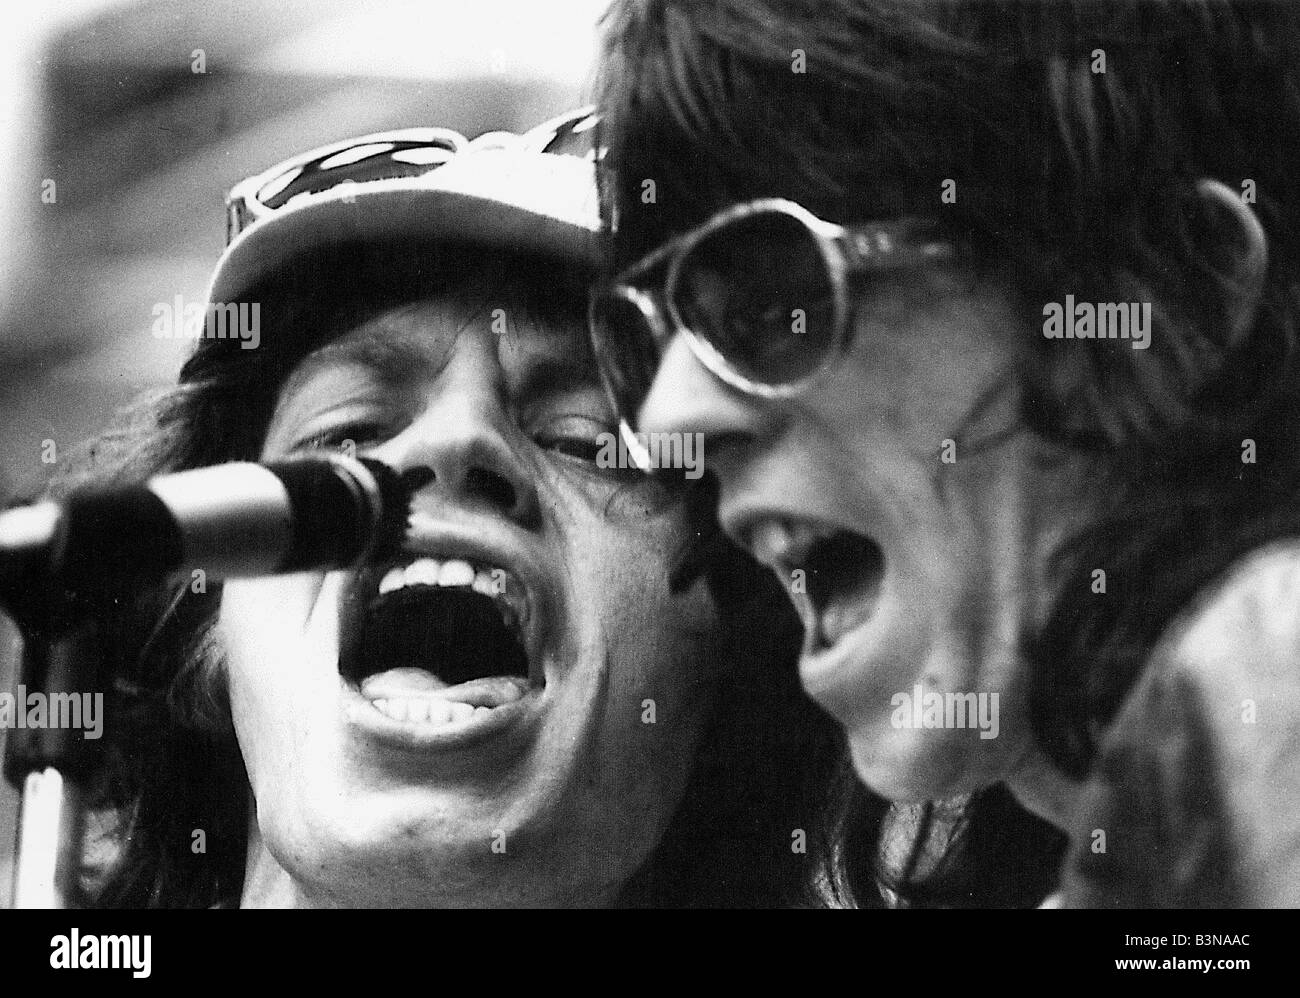 ROLLING STONES Mick Jagger and Keith Richards about 1980 - Stock Image